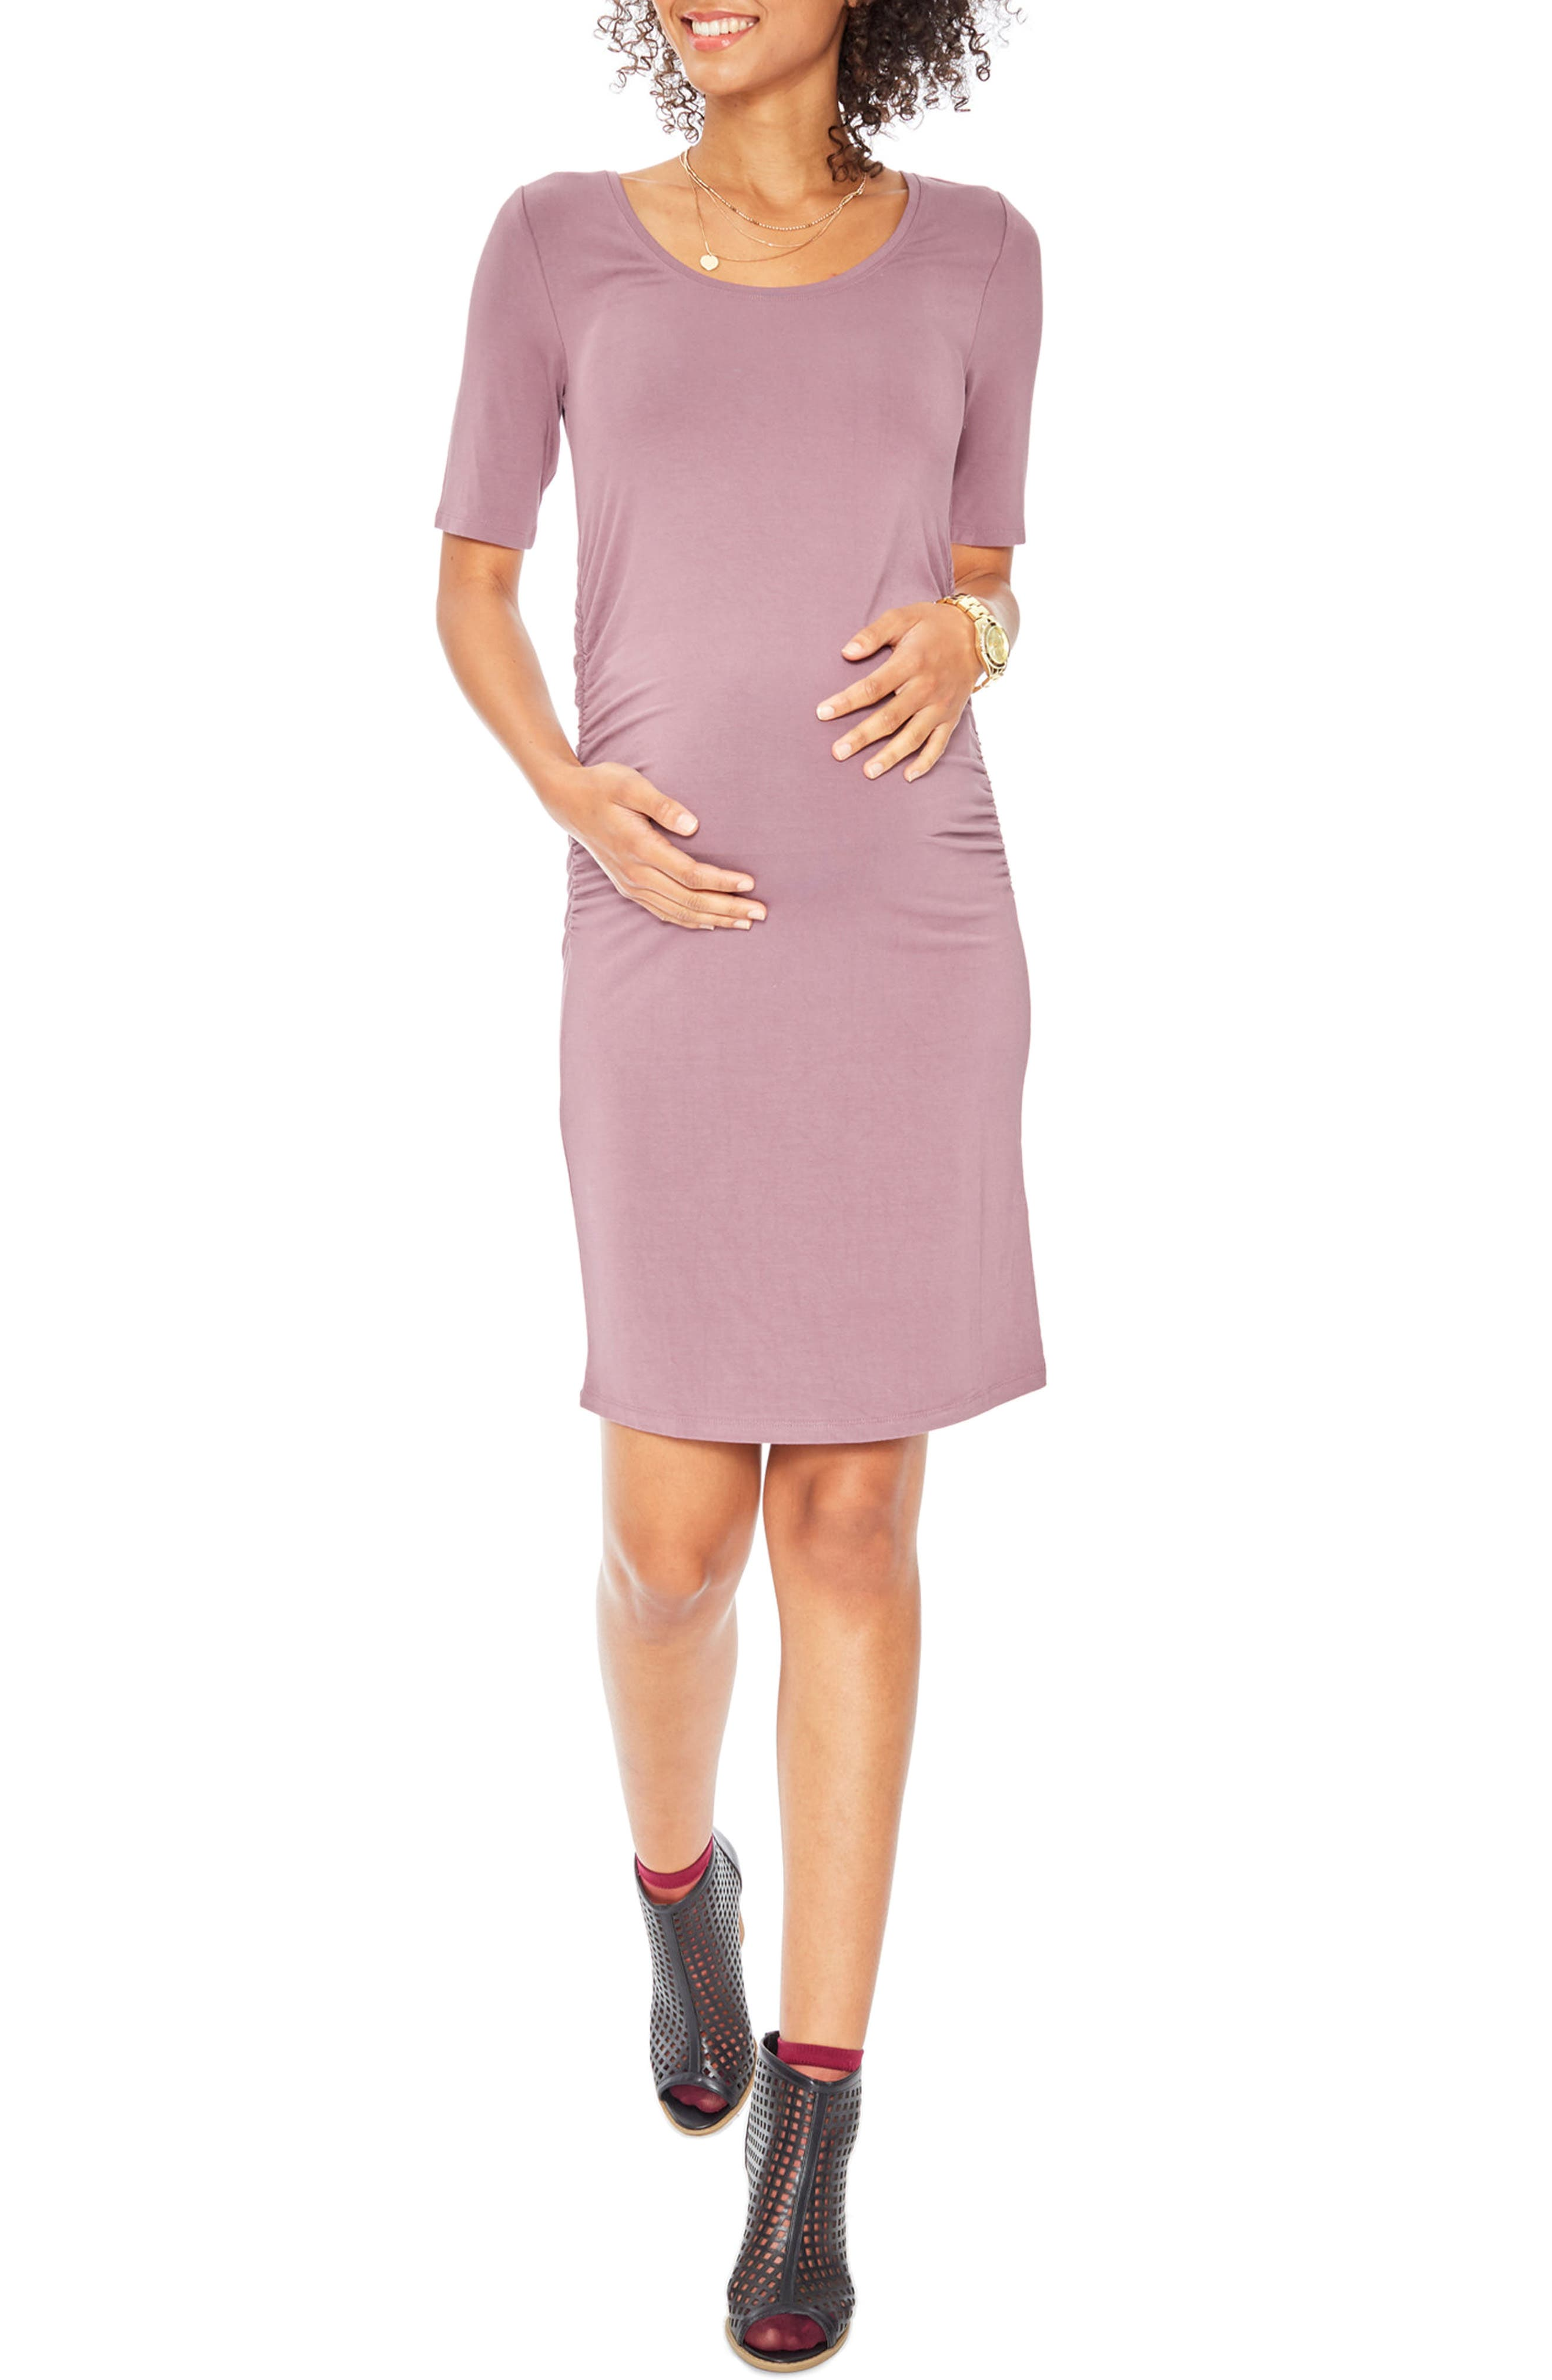 Rosie Pope RUTH MATERNITY DRESS